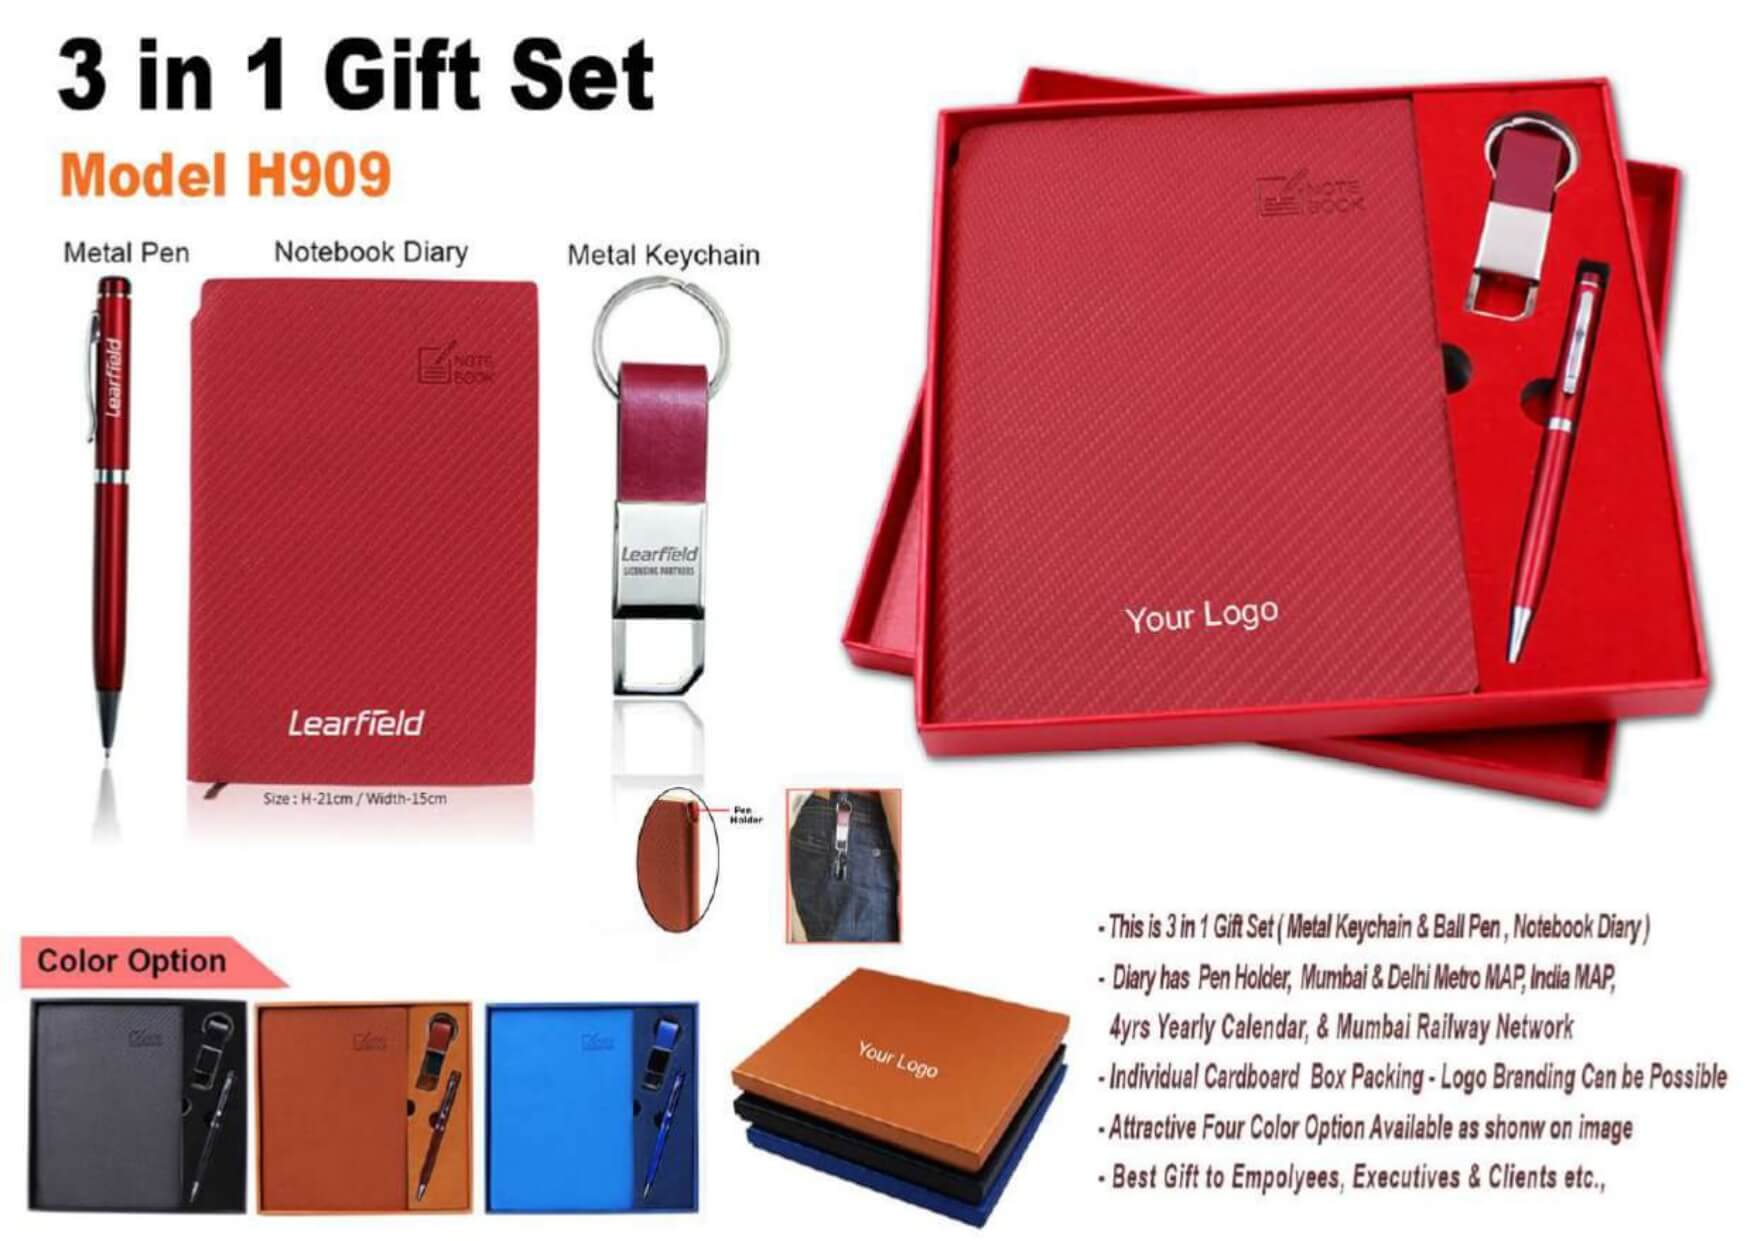 Diary, Pen and Keychain 3 in 1 Gift Set - 909